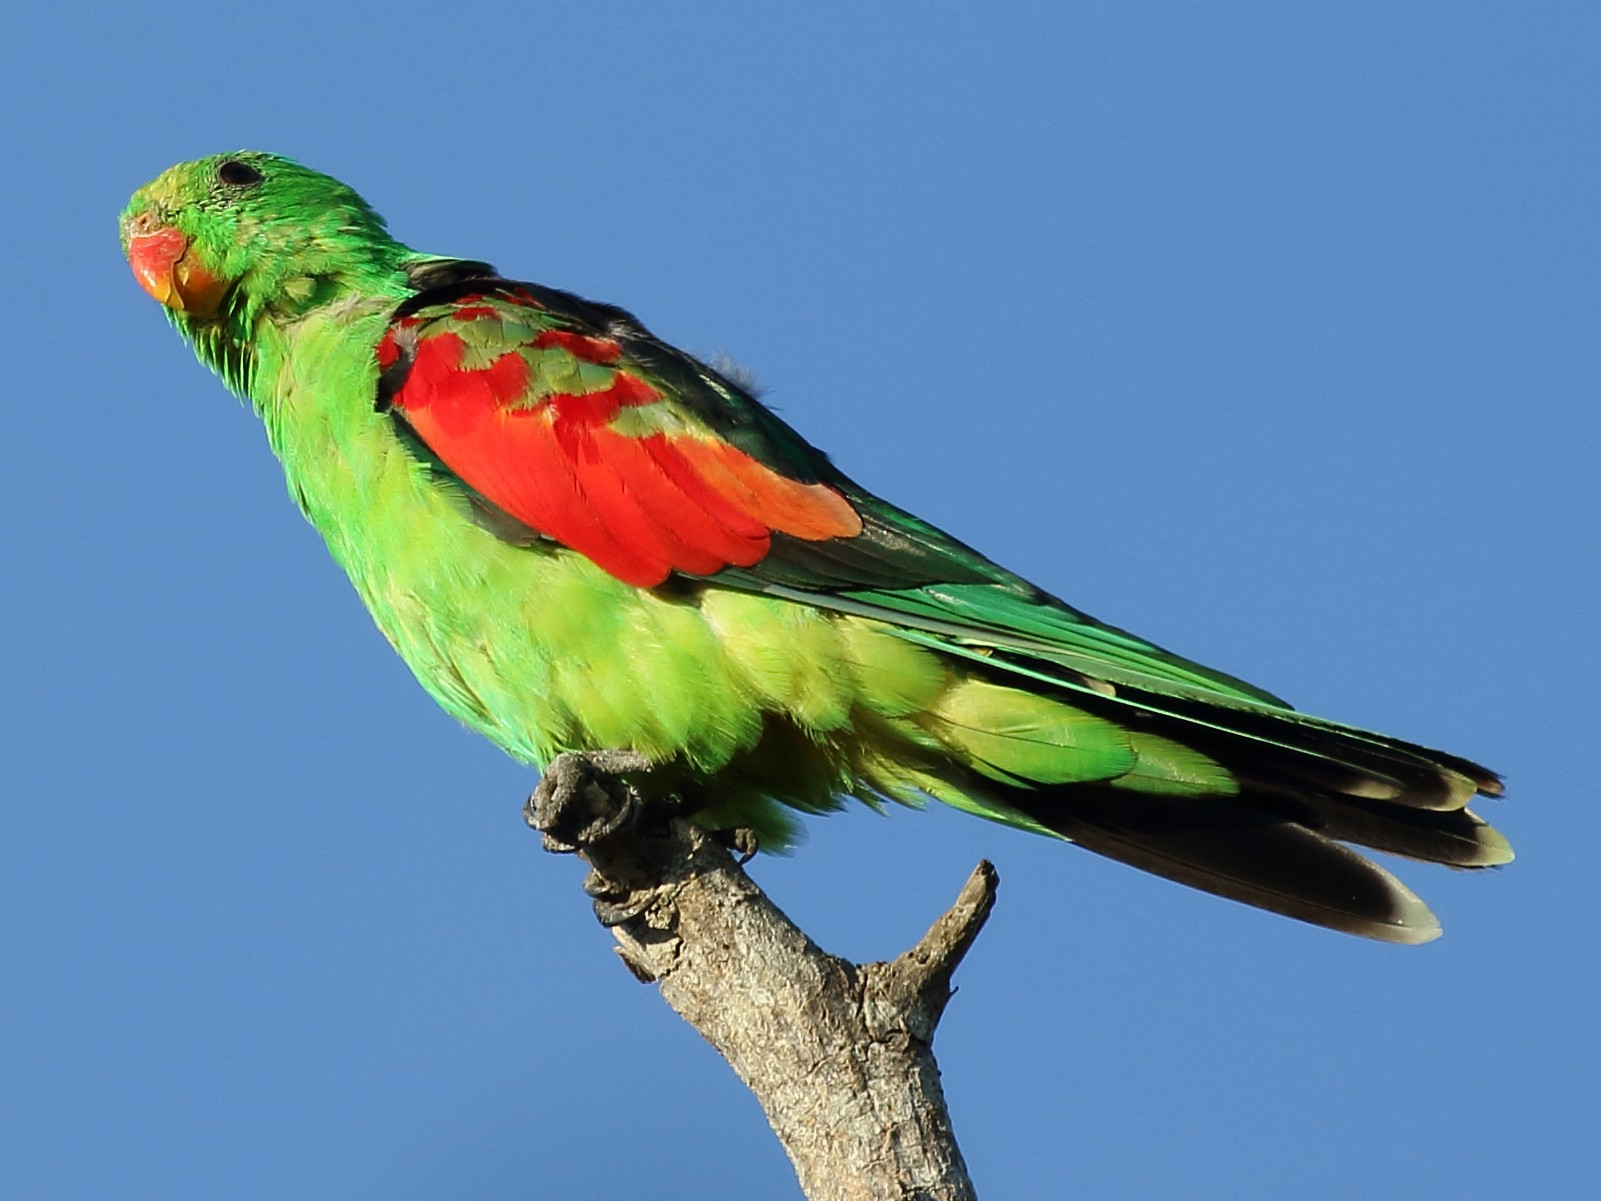 Red-winged Parrot - Michael Rutkowski